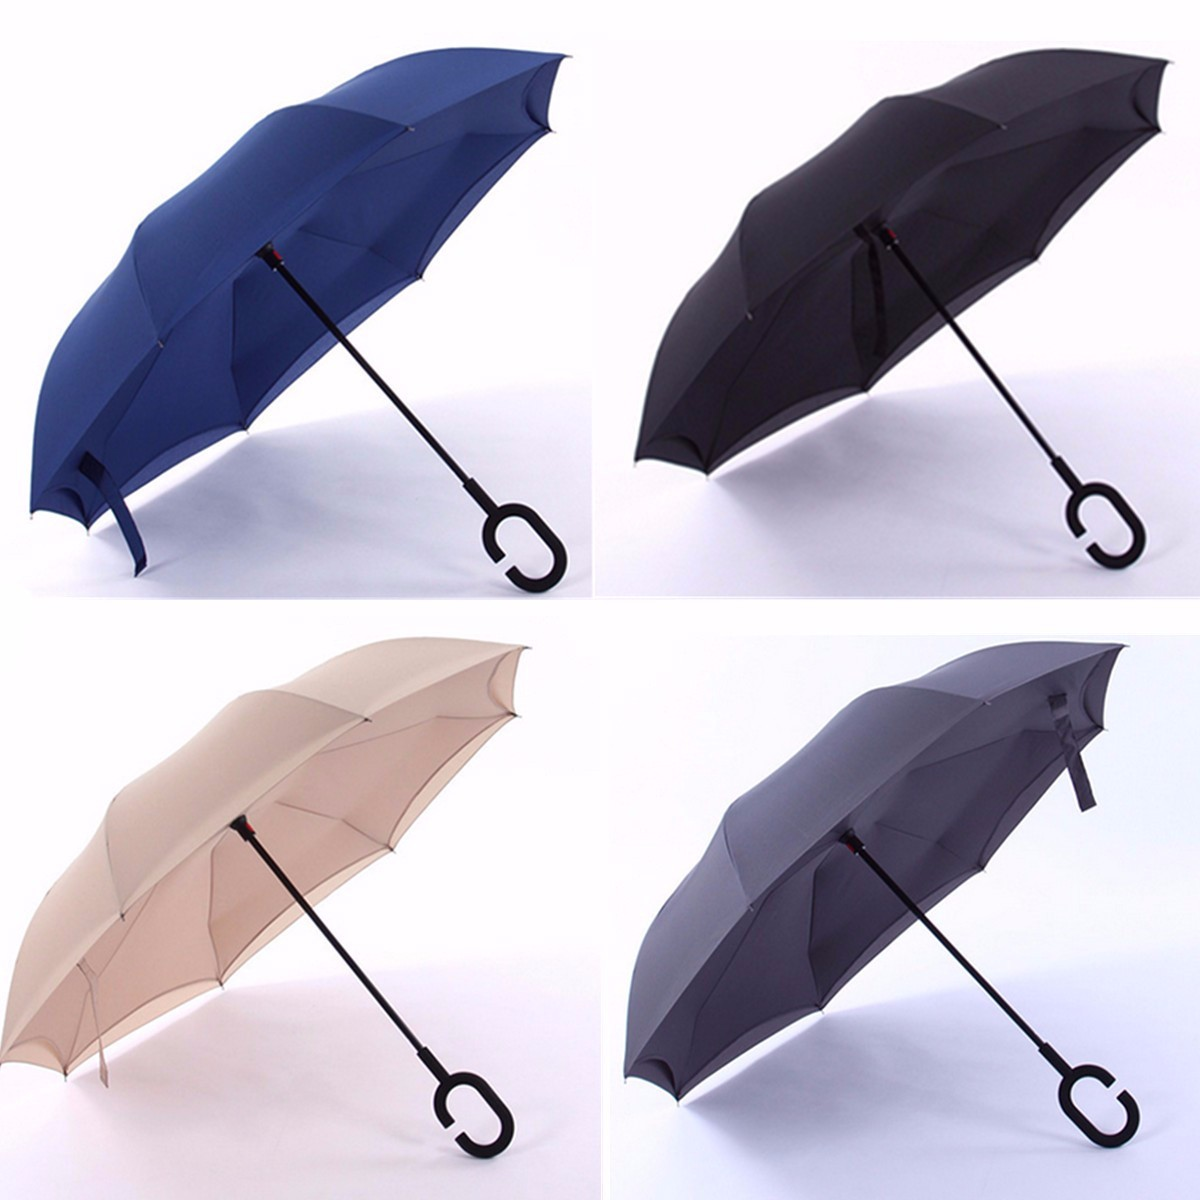 Double Layer Upside Down Reverse Inverted Umbrella C Shape Handle Inside Out Umbrella Rain Sun Proof Parasol Solid 4 Colors(China (Mainland))